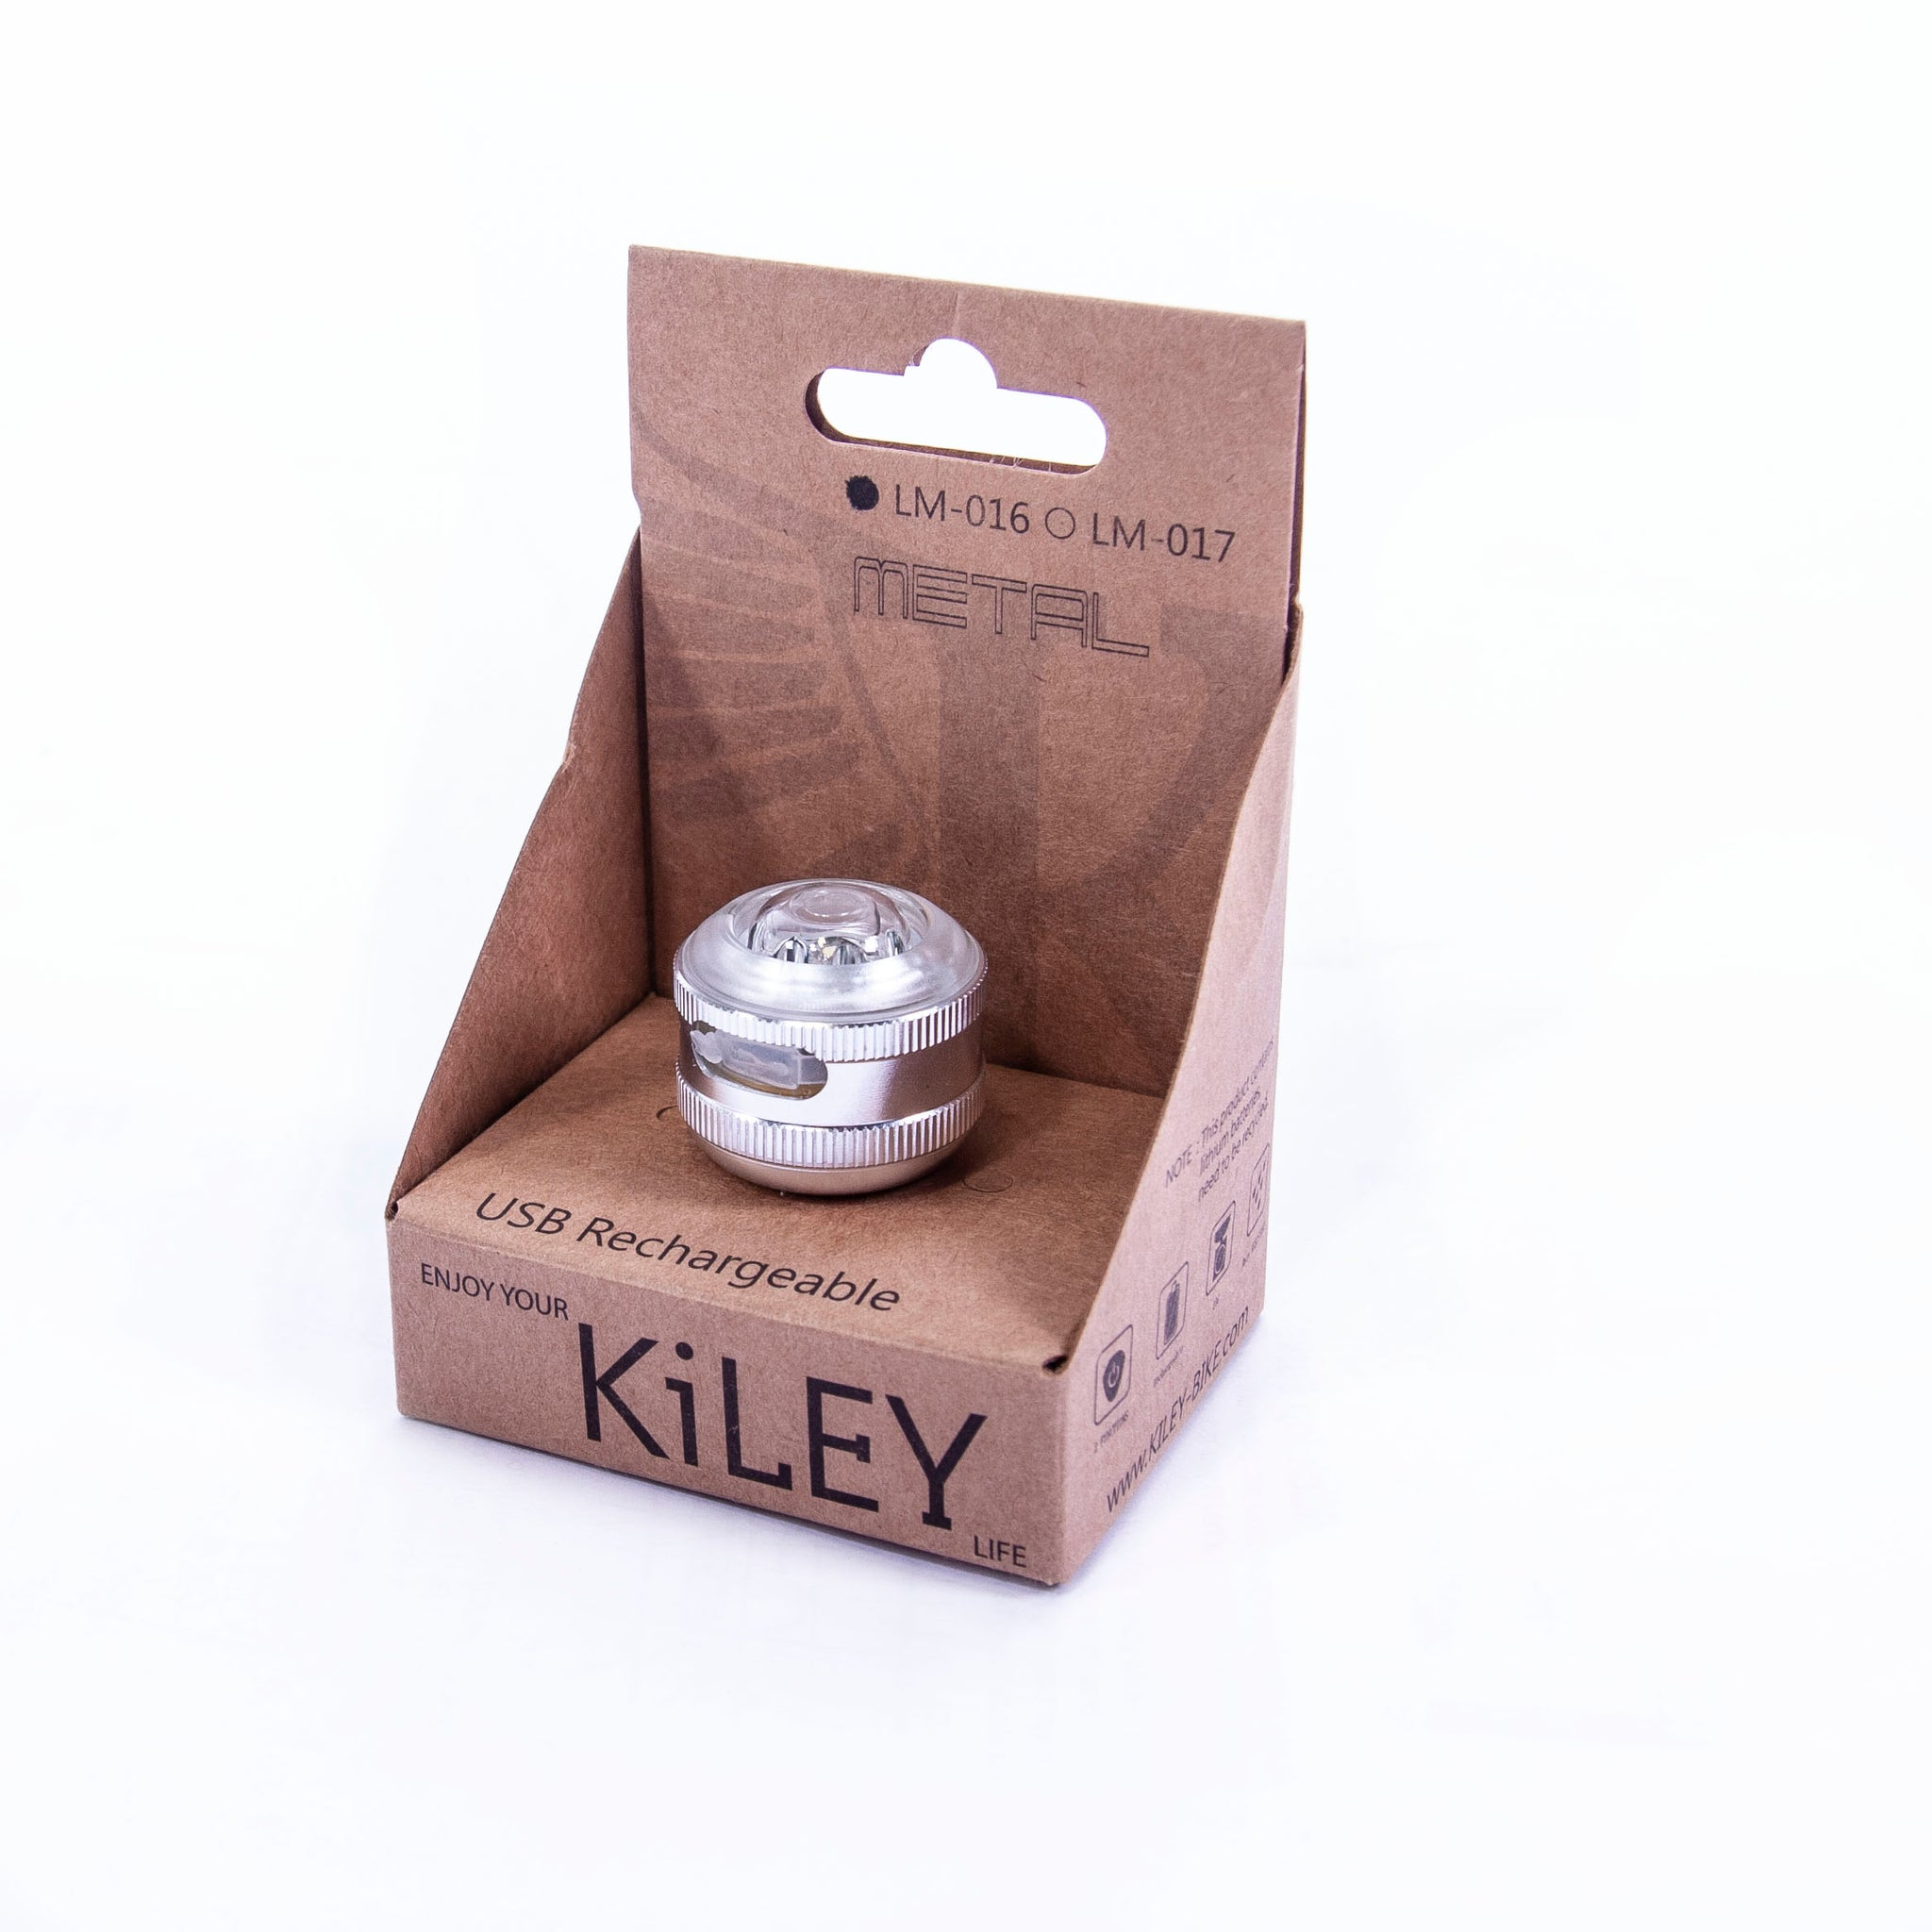 KiLEY Front USB Rechargeable Bicycle Light